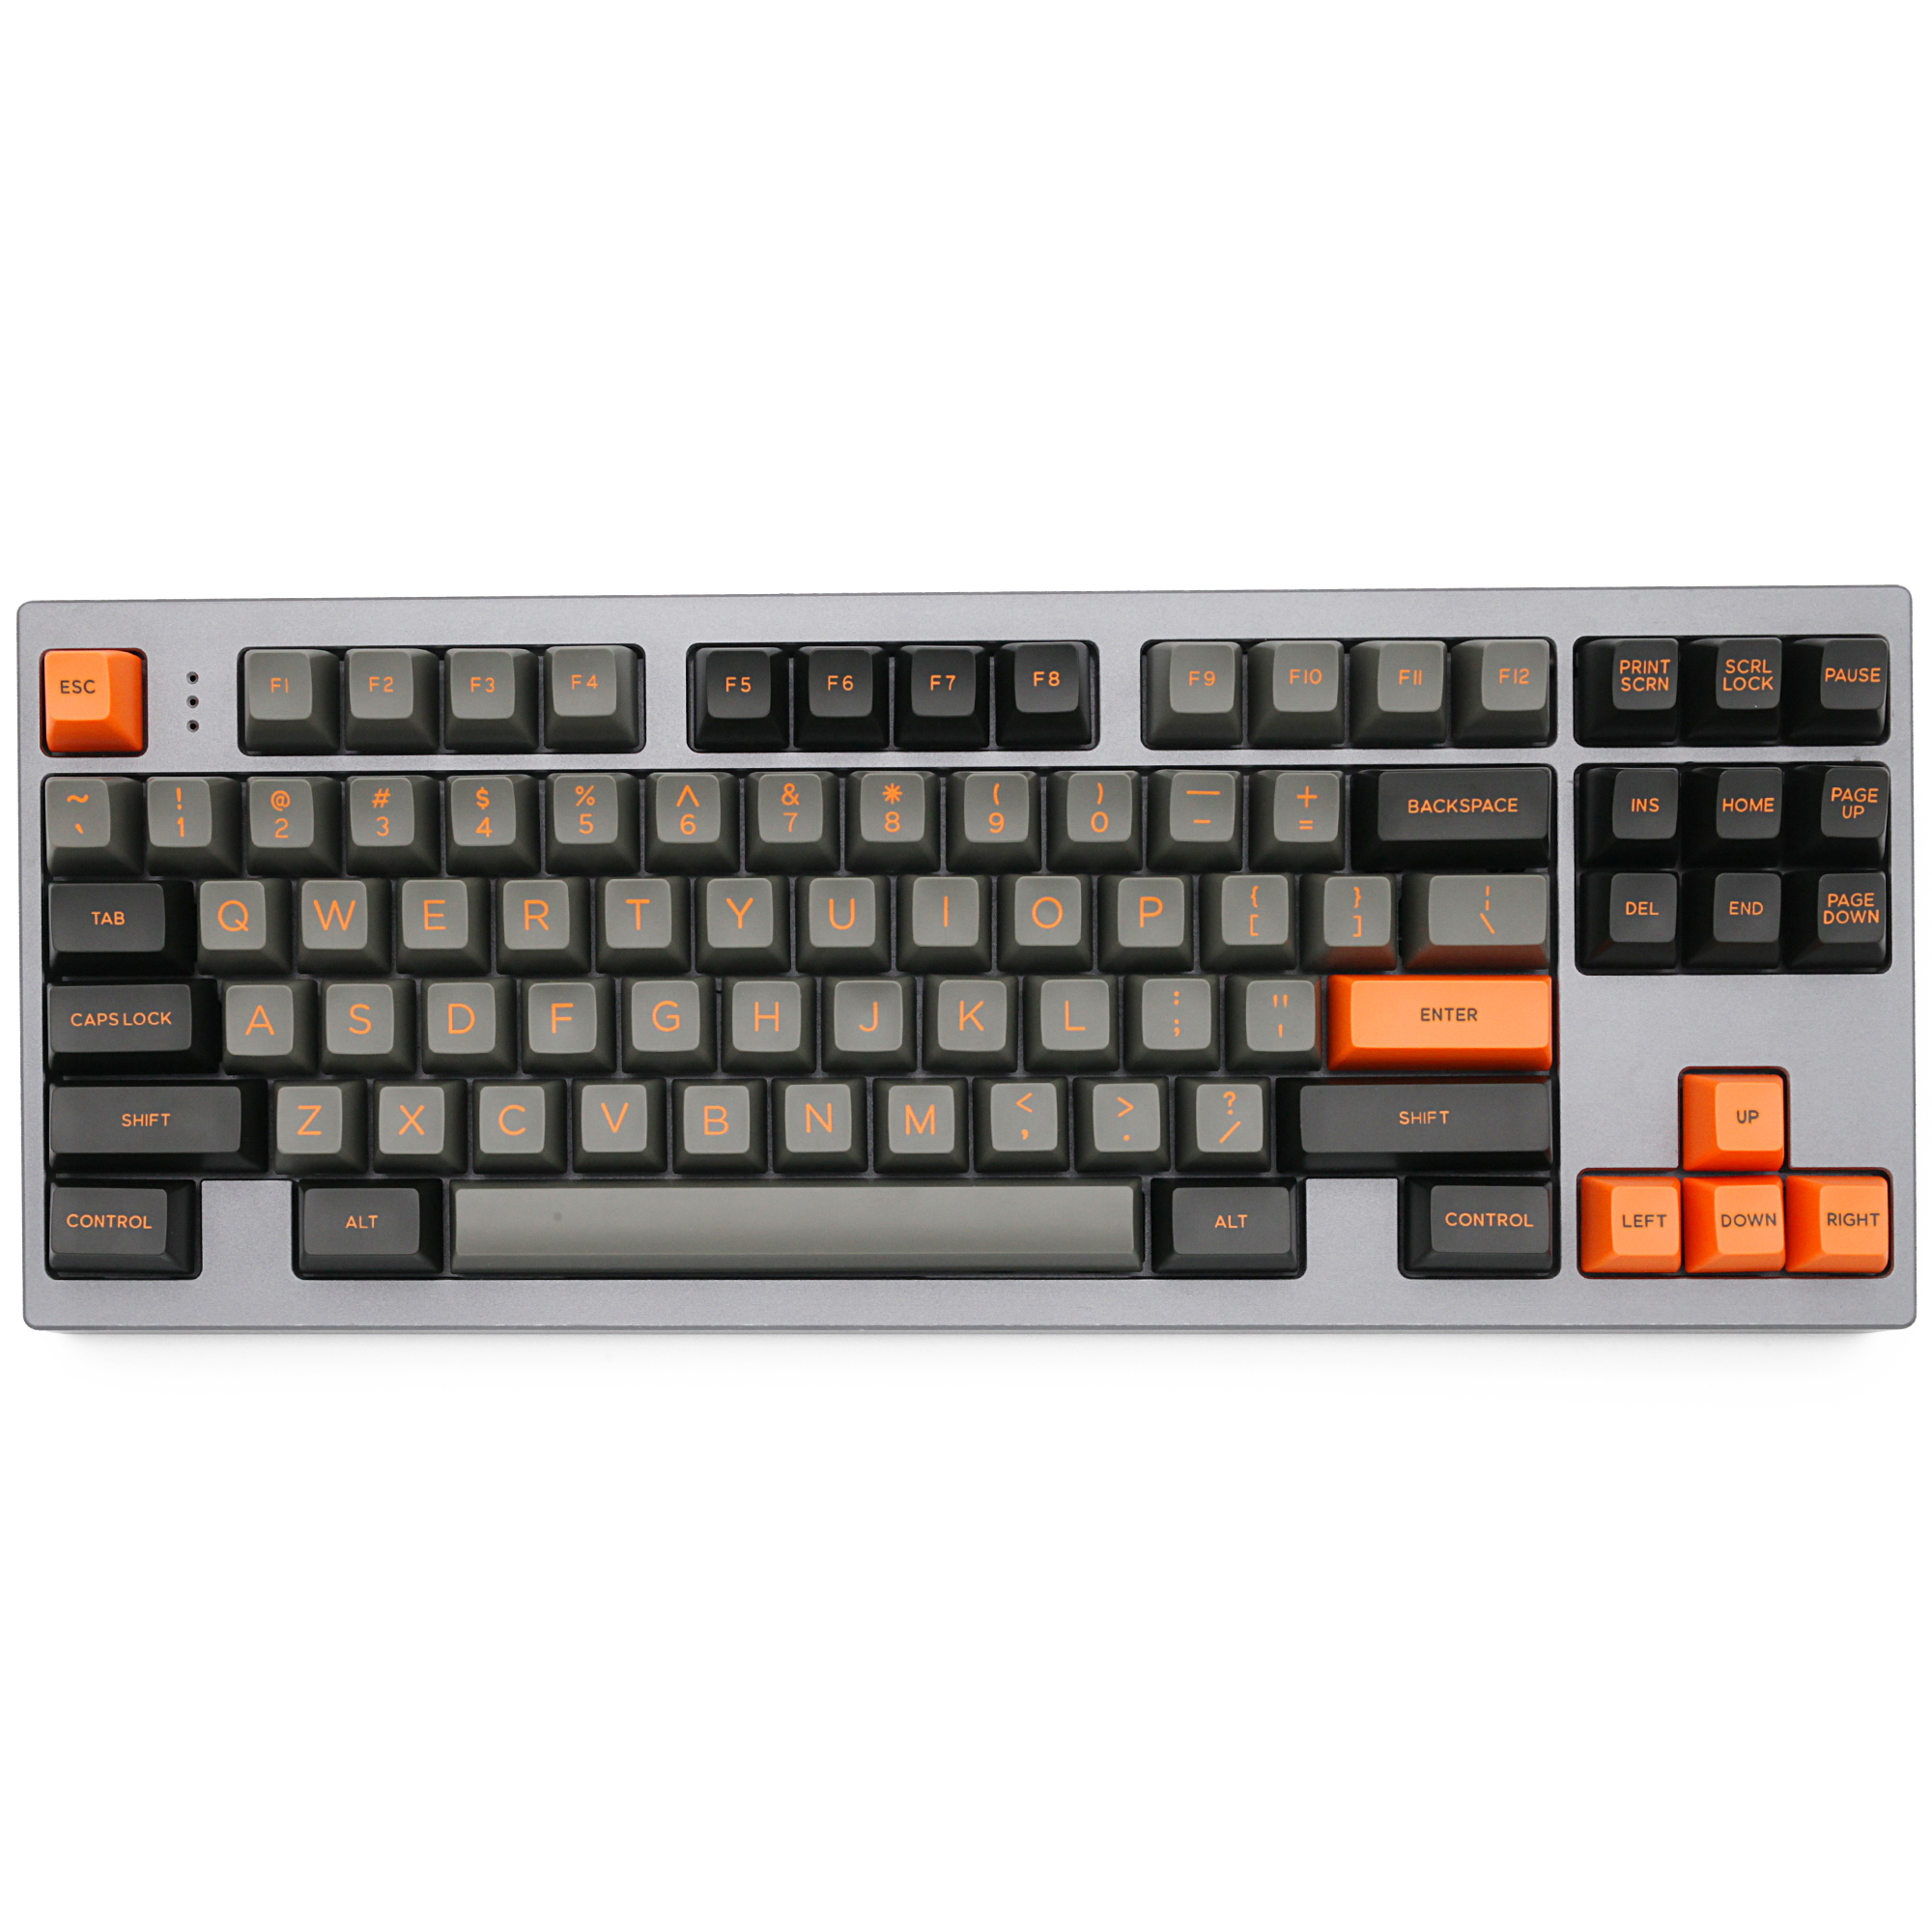 Domikey SA Abs Doubleshot Keycap Set Geeks Dolch SA Profile For Mx Stem Keyboard Poker 87 104 Gh60 Xd64 Xd68 Xd84 Xd96 Xd75 Xd87